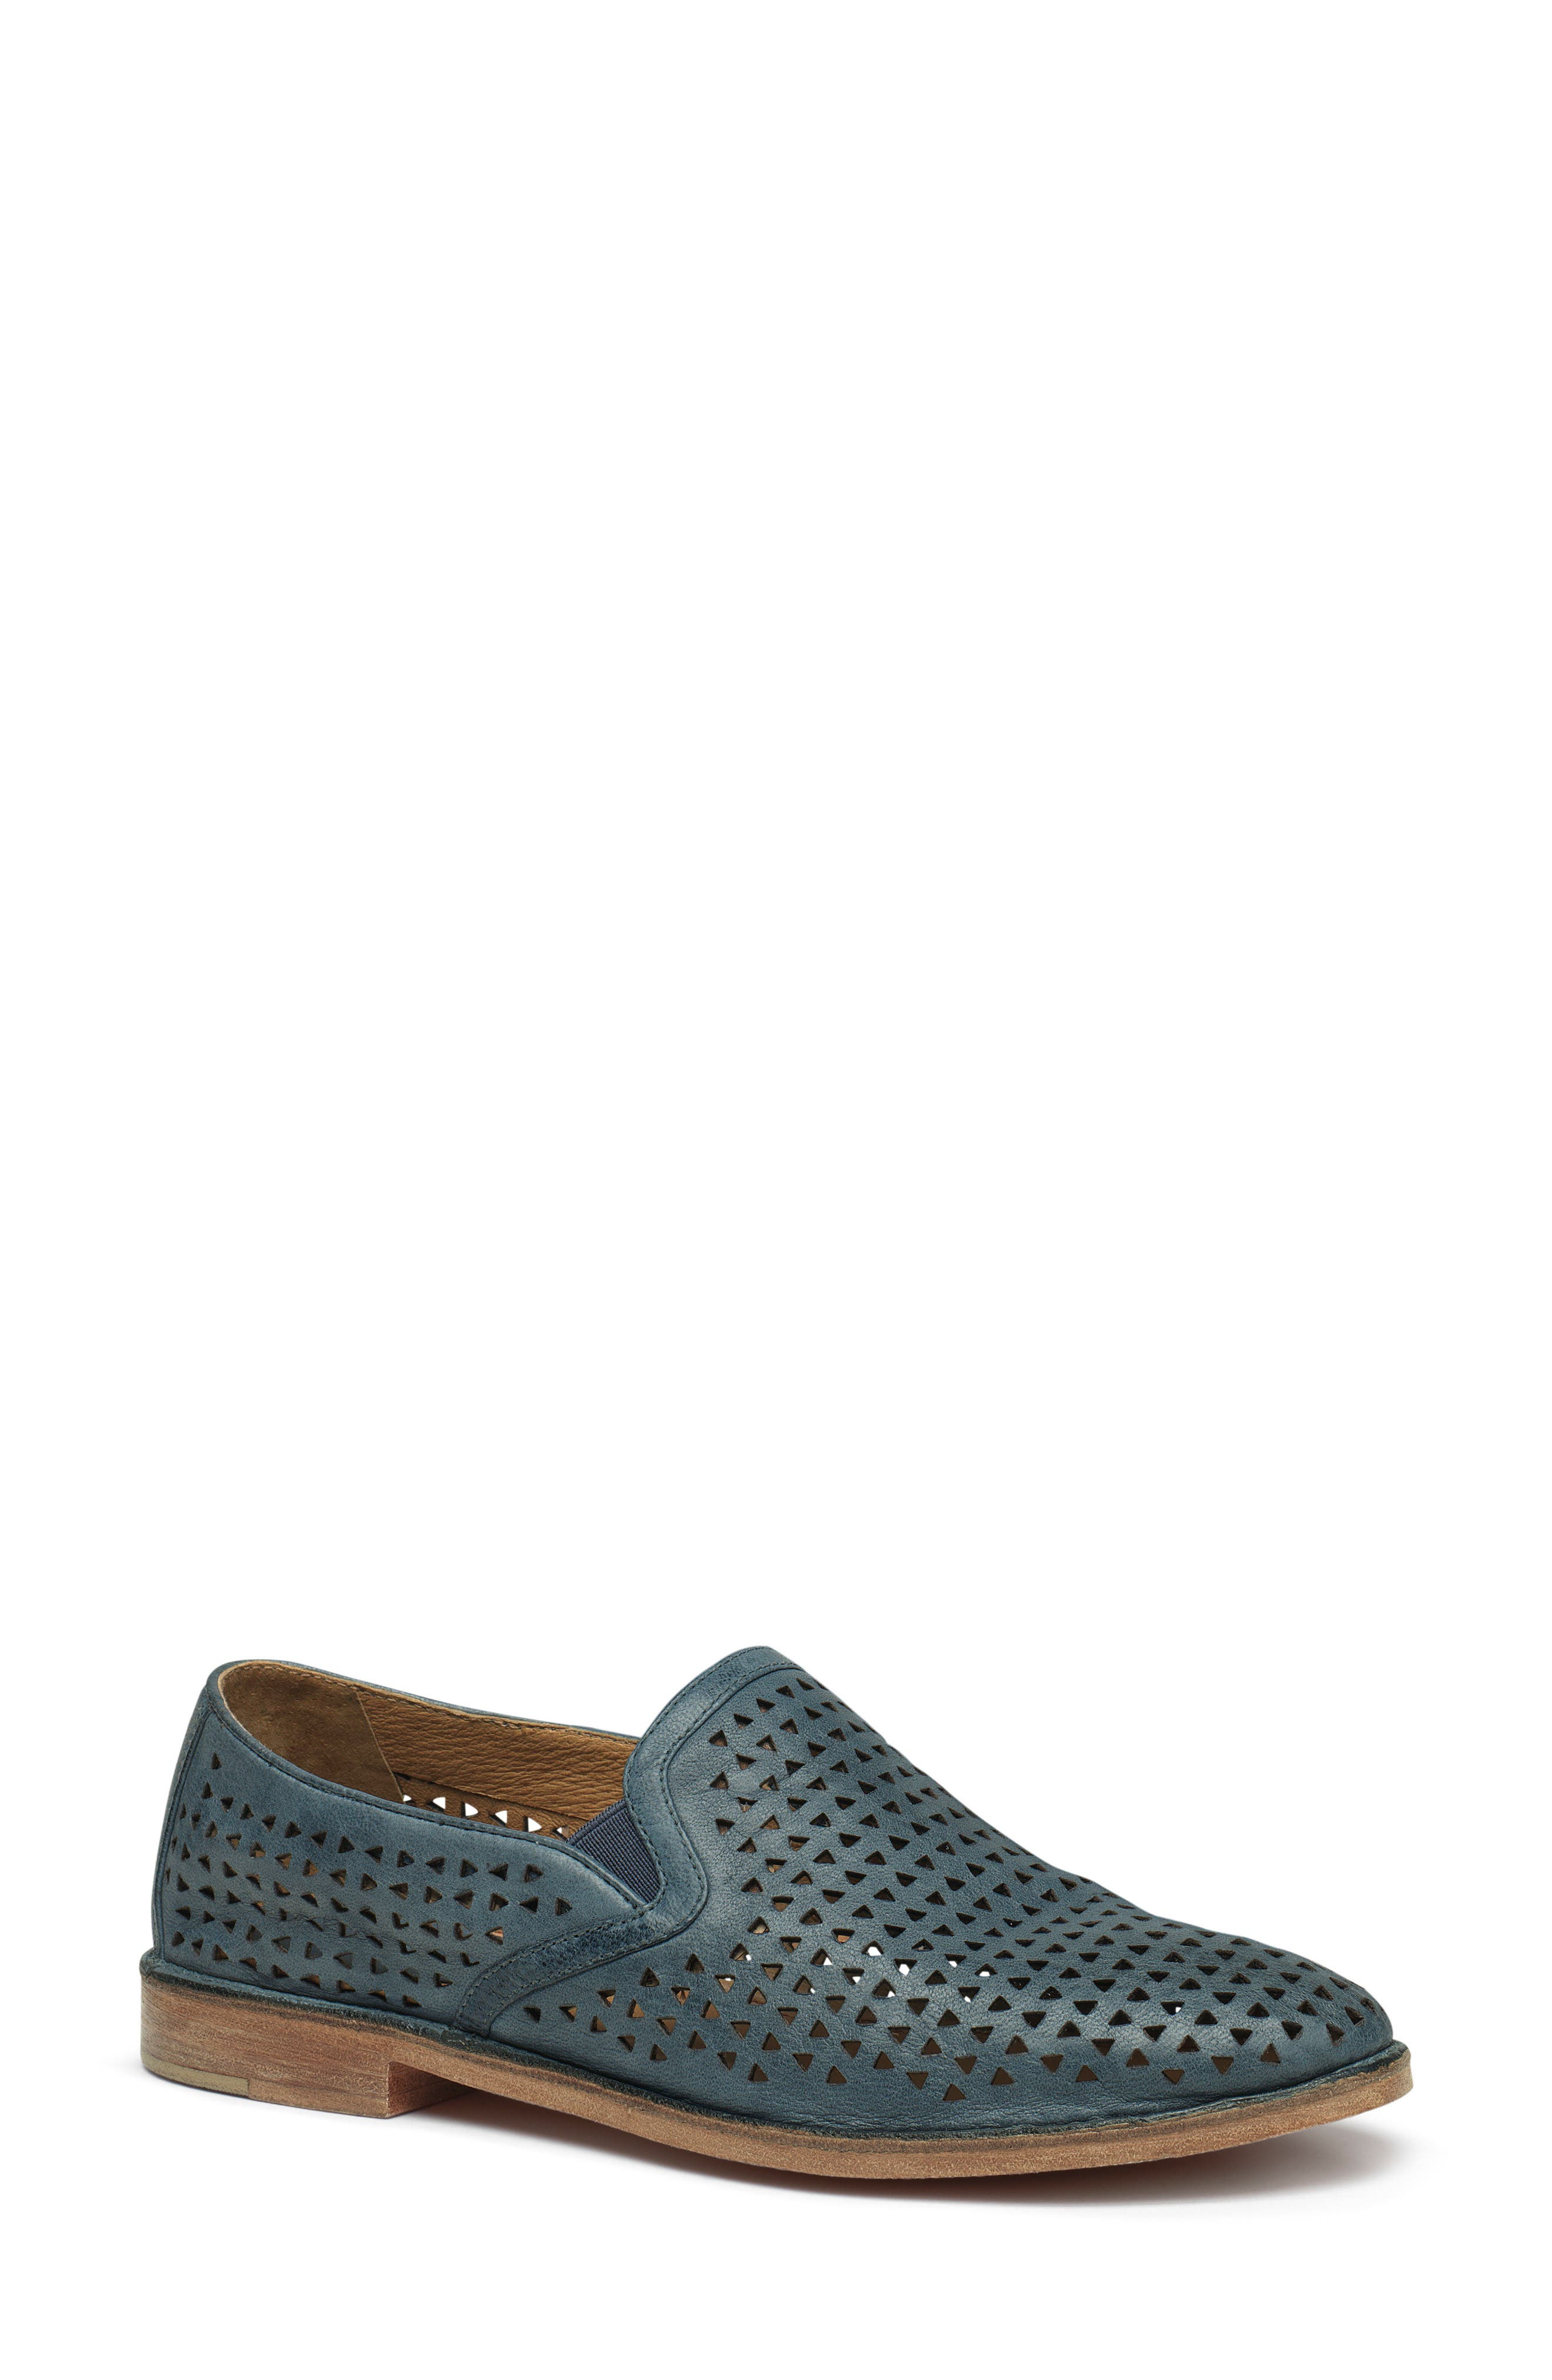 Trask Ali Perforated Loafer, Blue